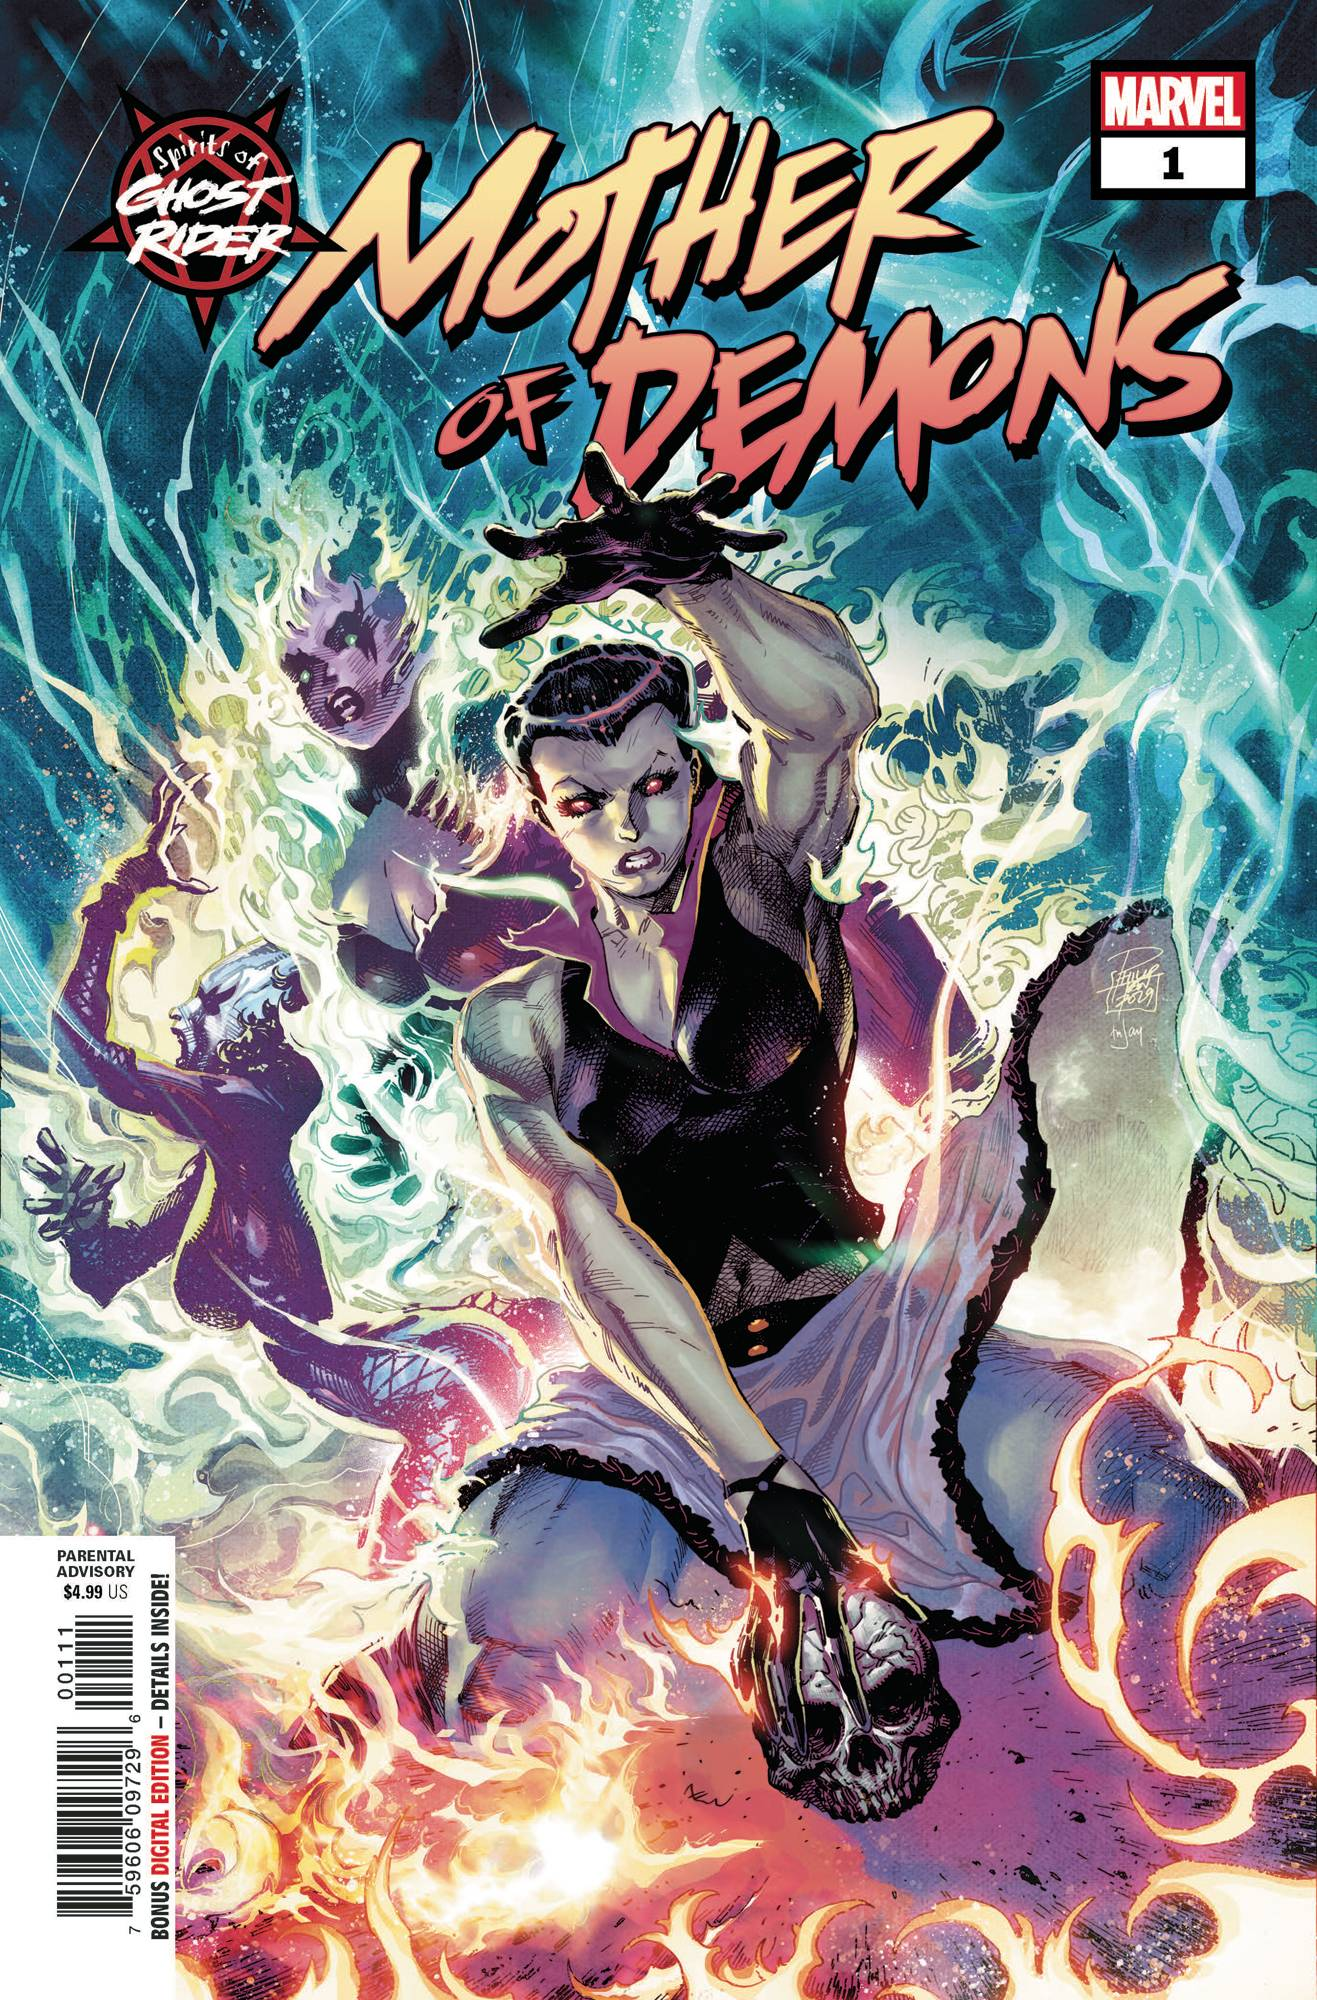 SPIRITS GHOST RIDER MOTHER OF DEMONS #1